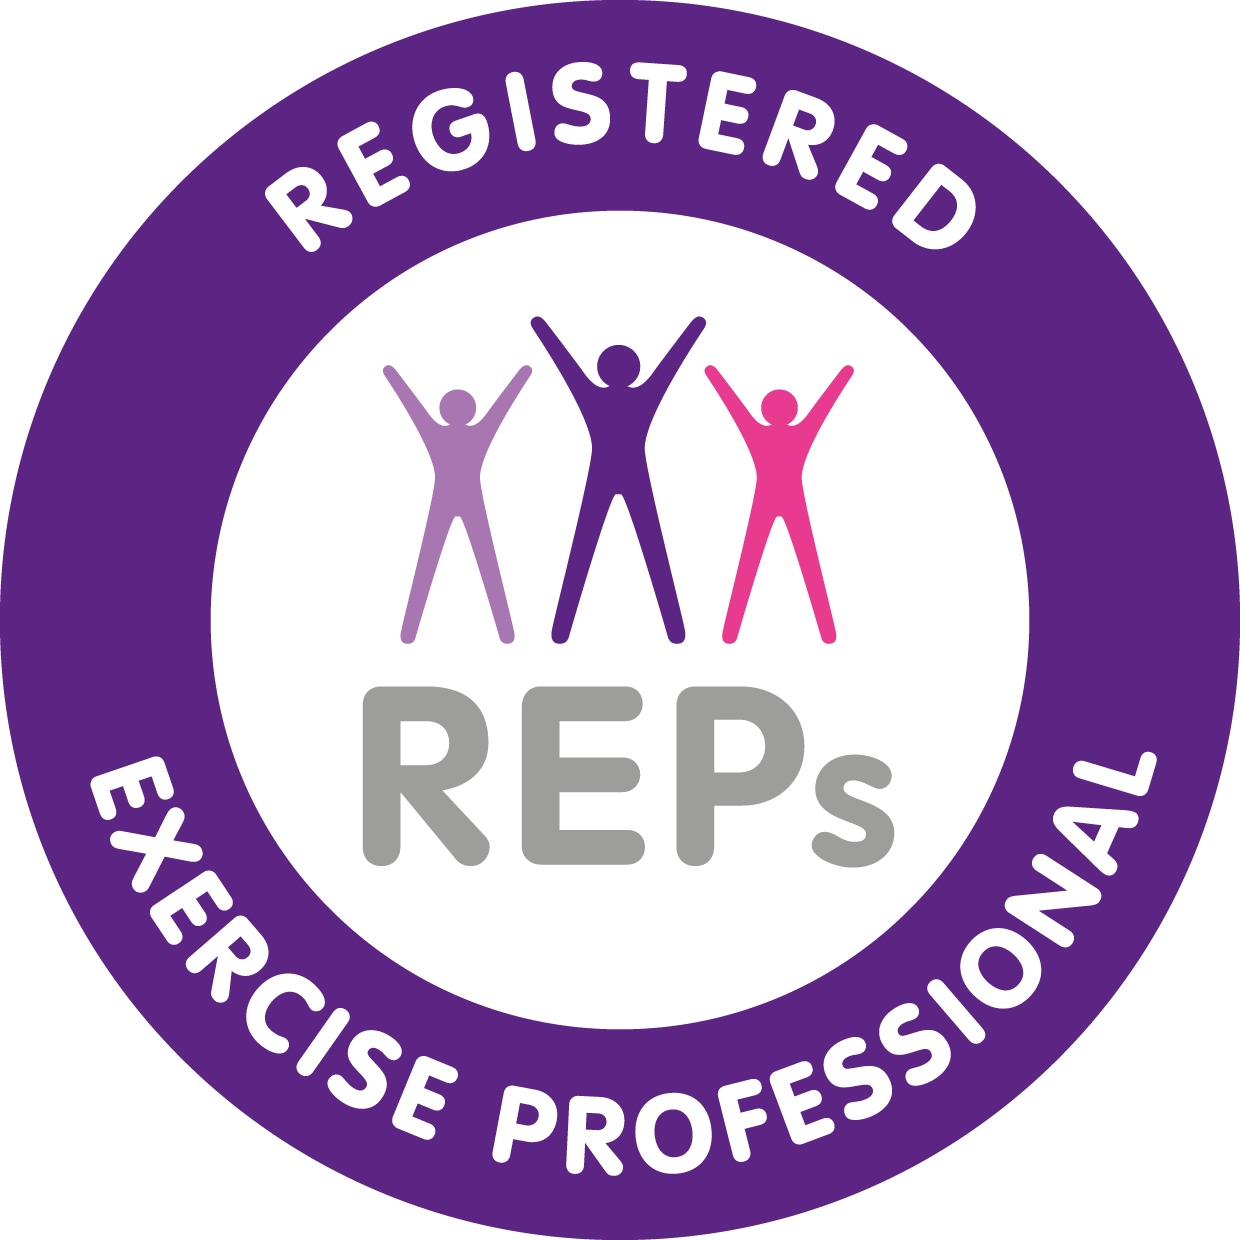 REPS_Registered_Excercise_Professional.png